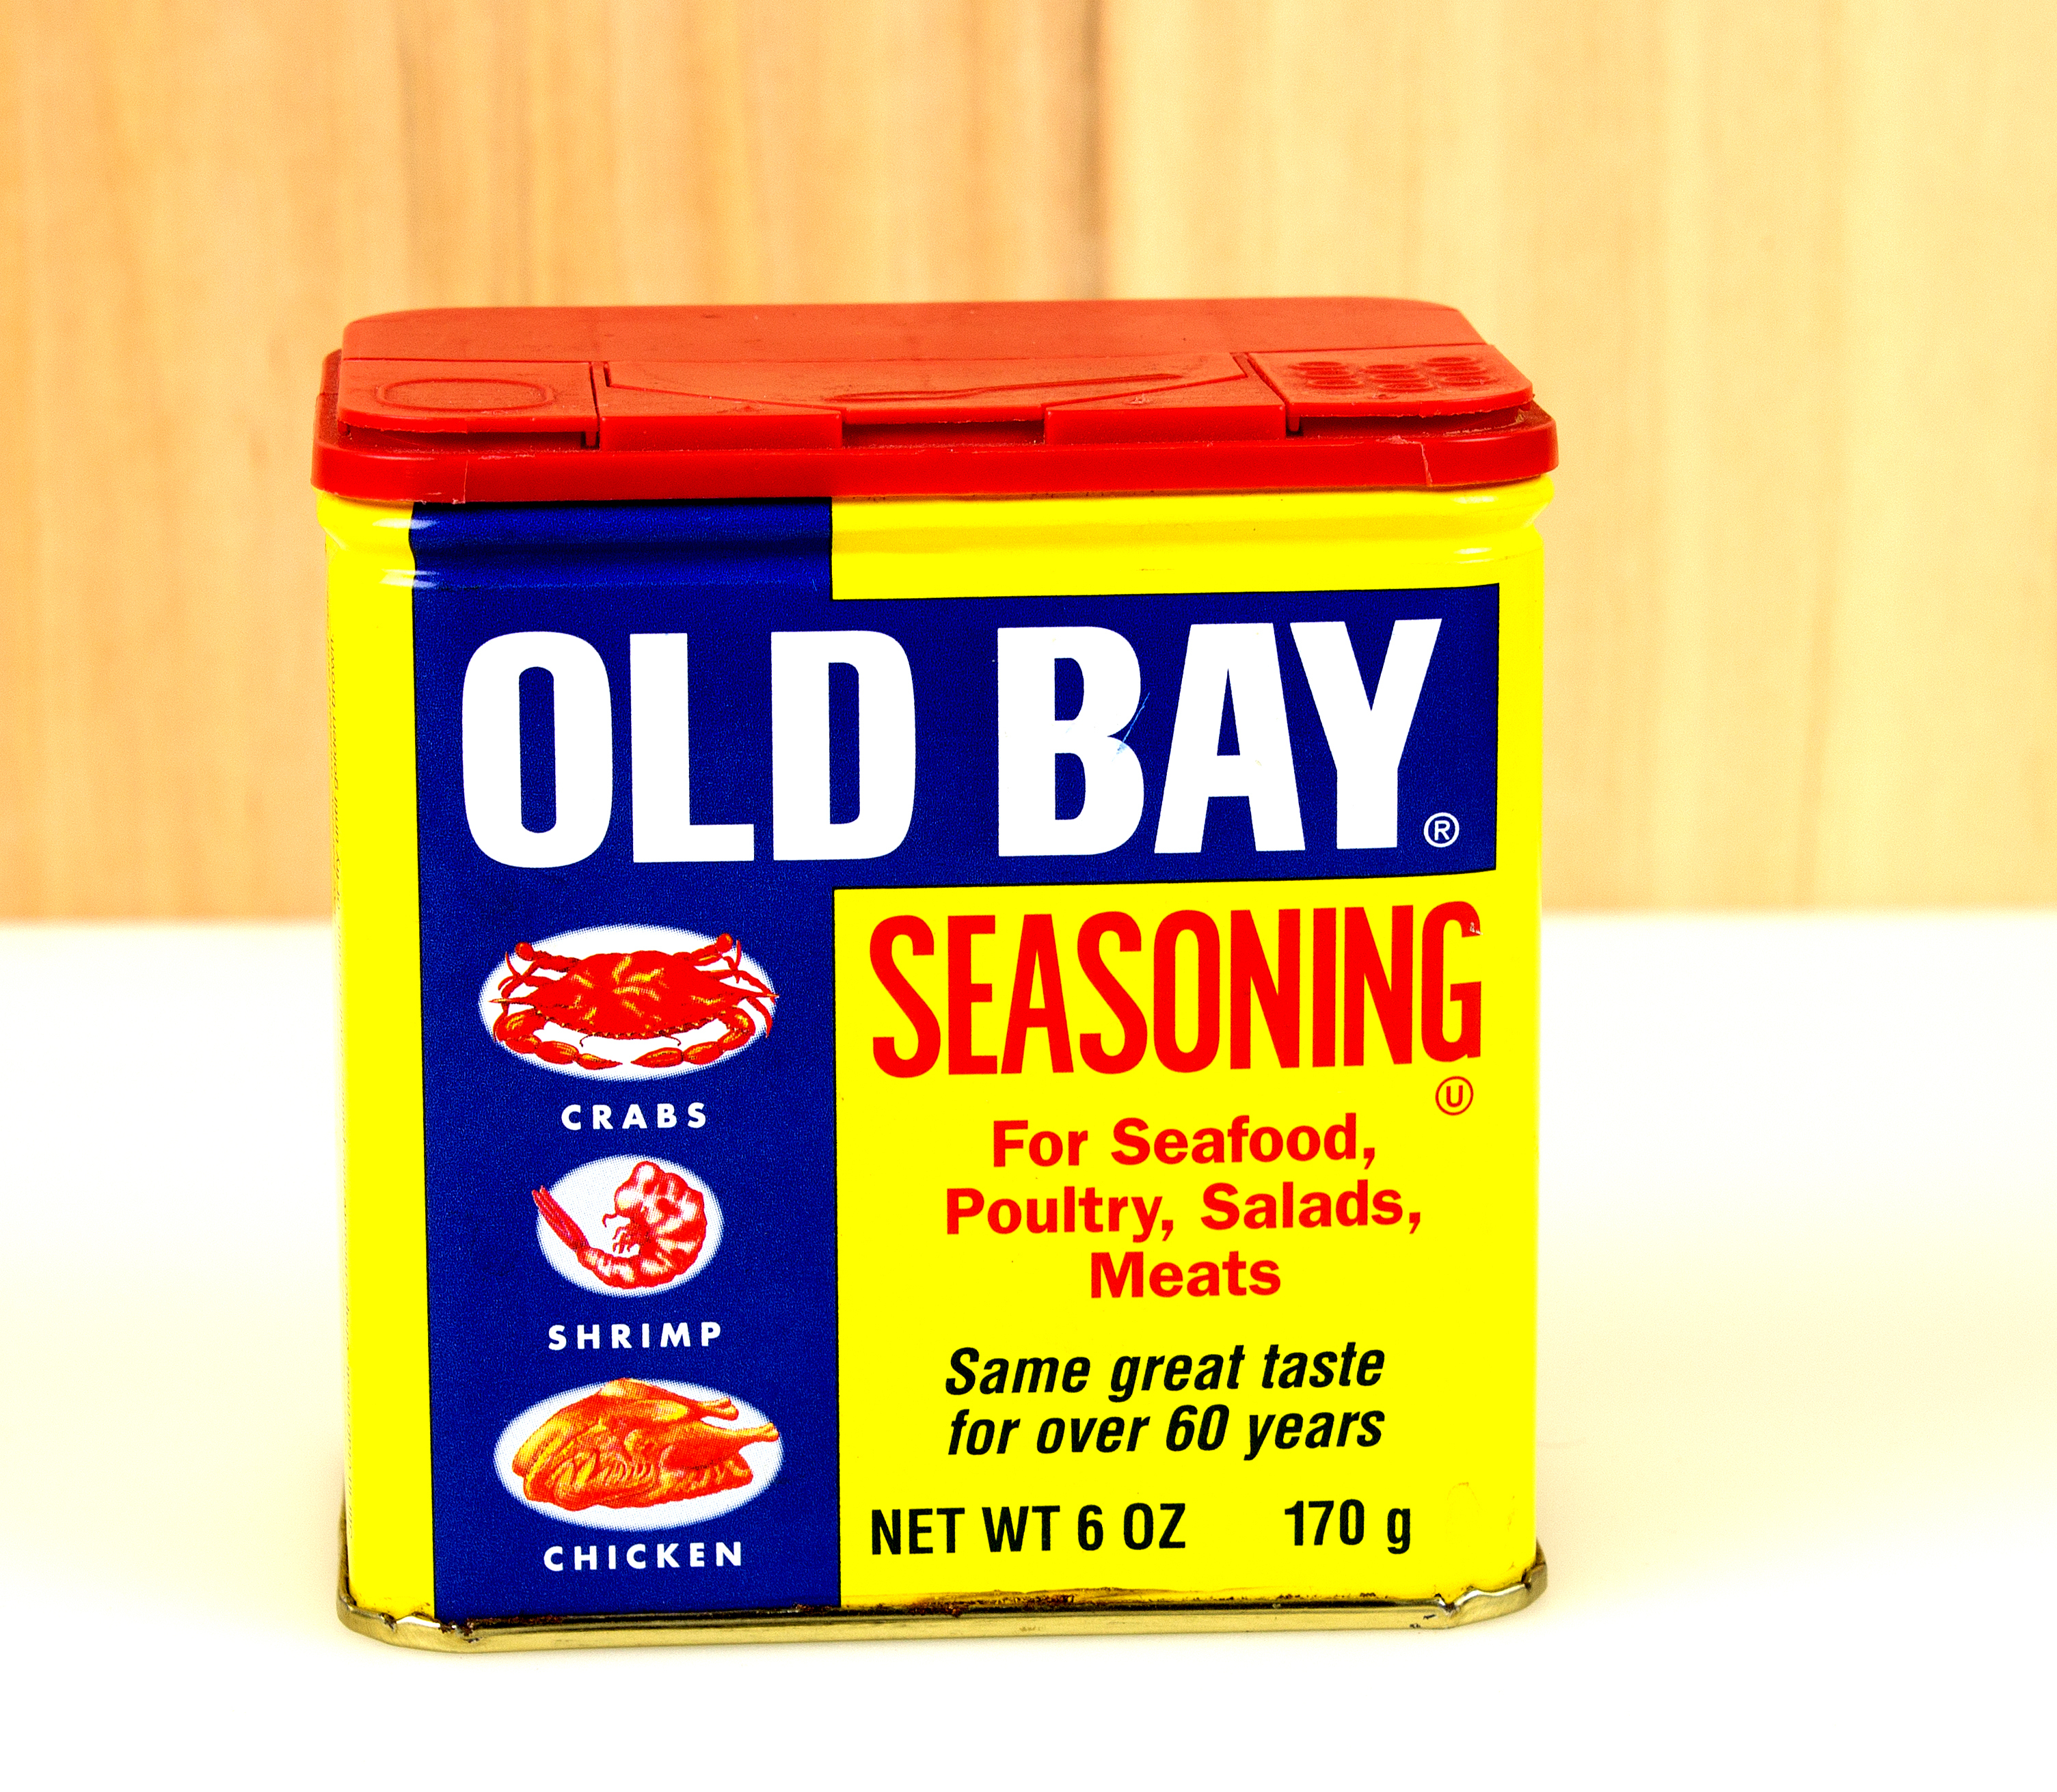 Meet the New Bae, Same as the Old Bay